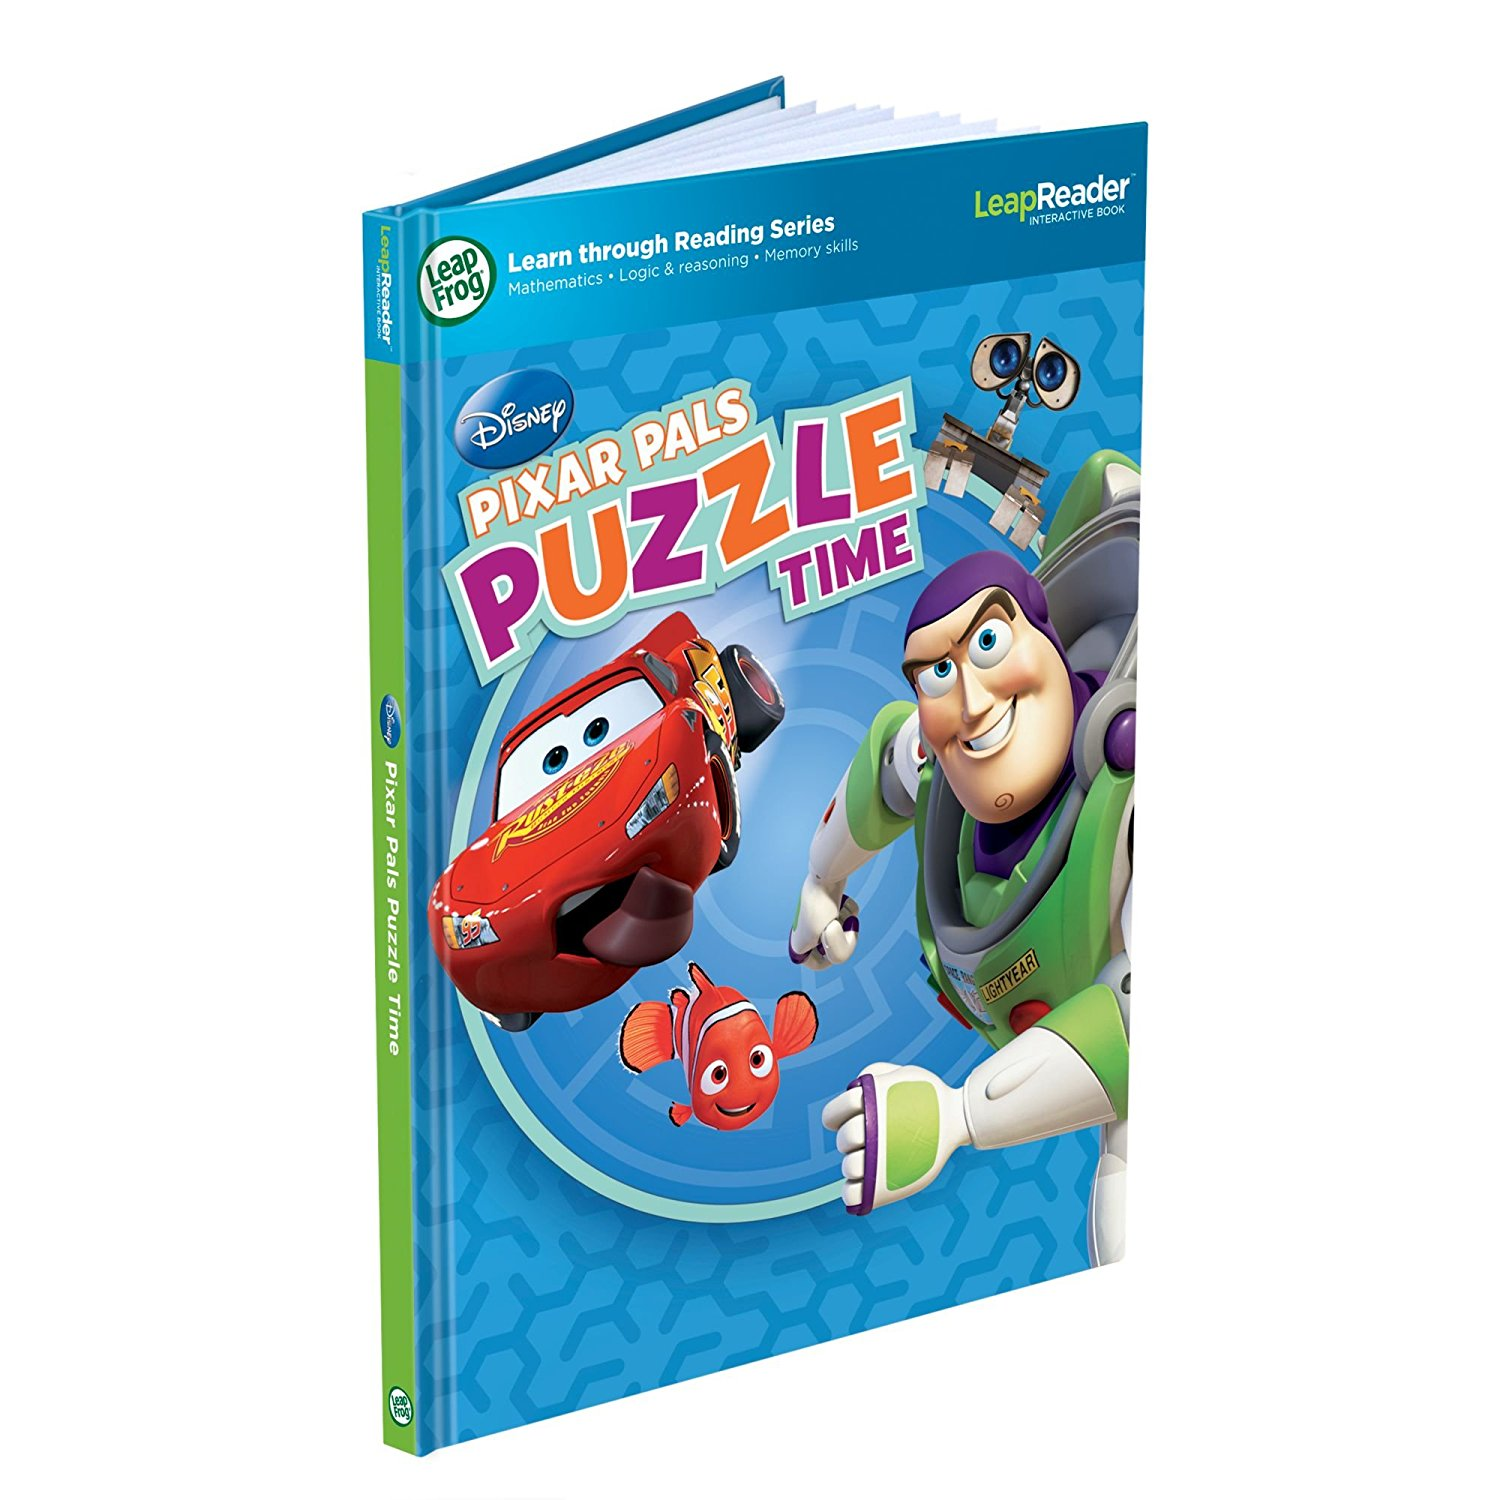 Tag Game Book: Pixar Pals Puzzle Time, Join friends from Toy Story 3, Cars, Finding Nemo... by